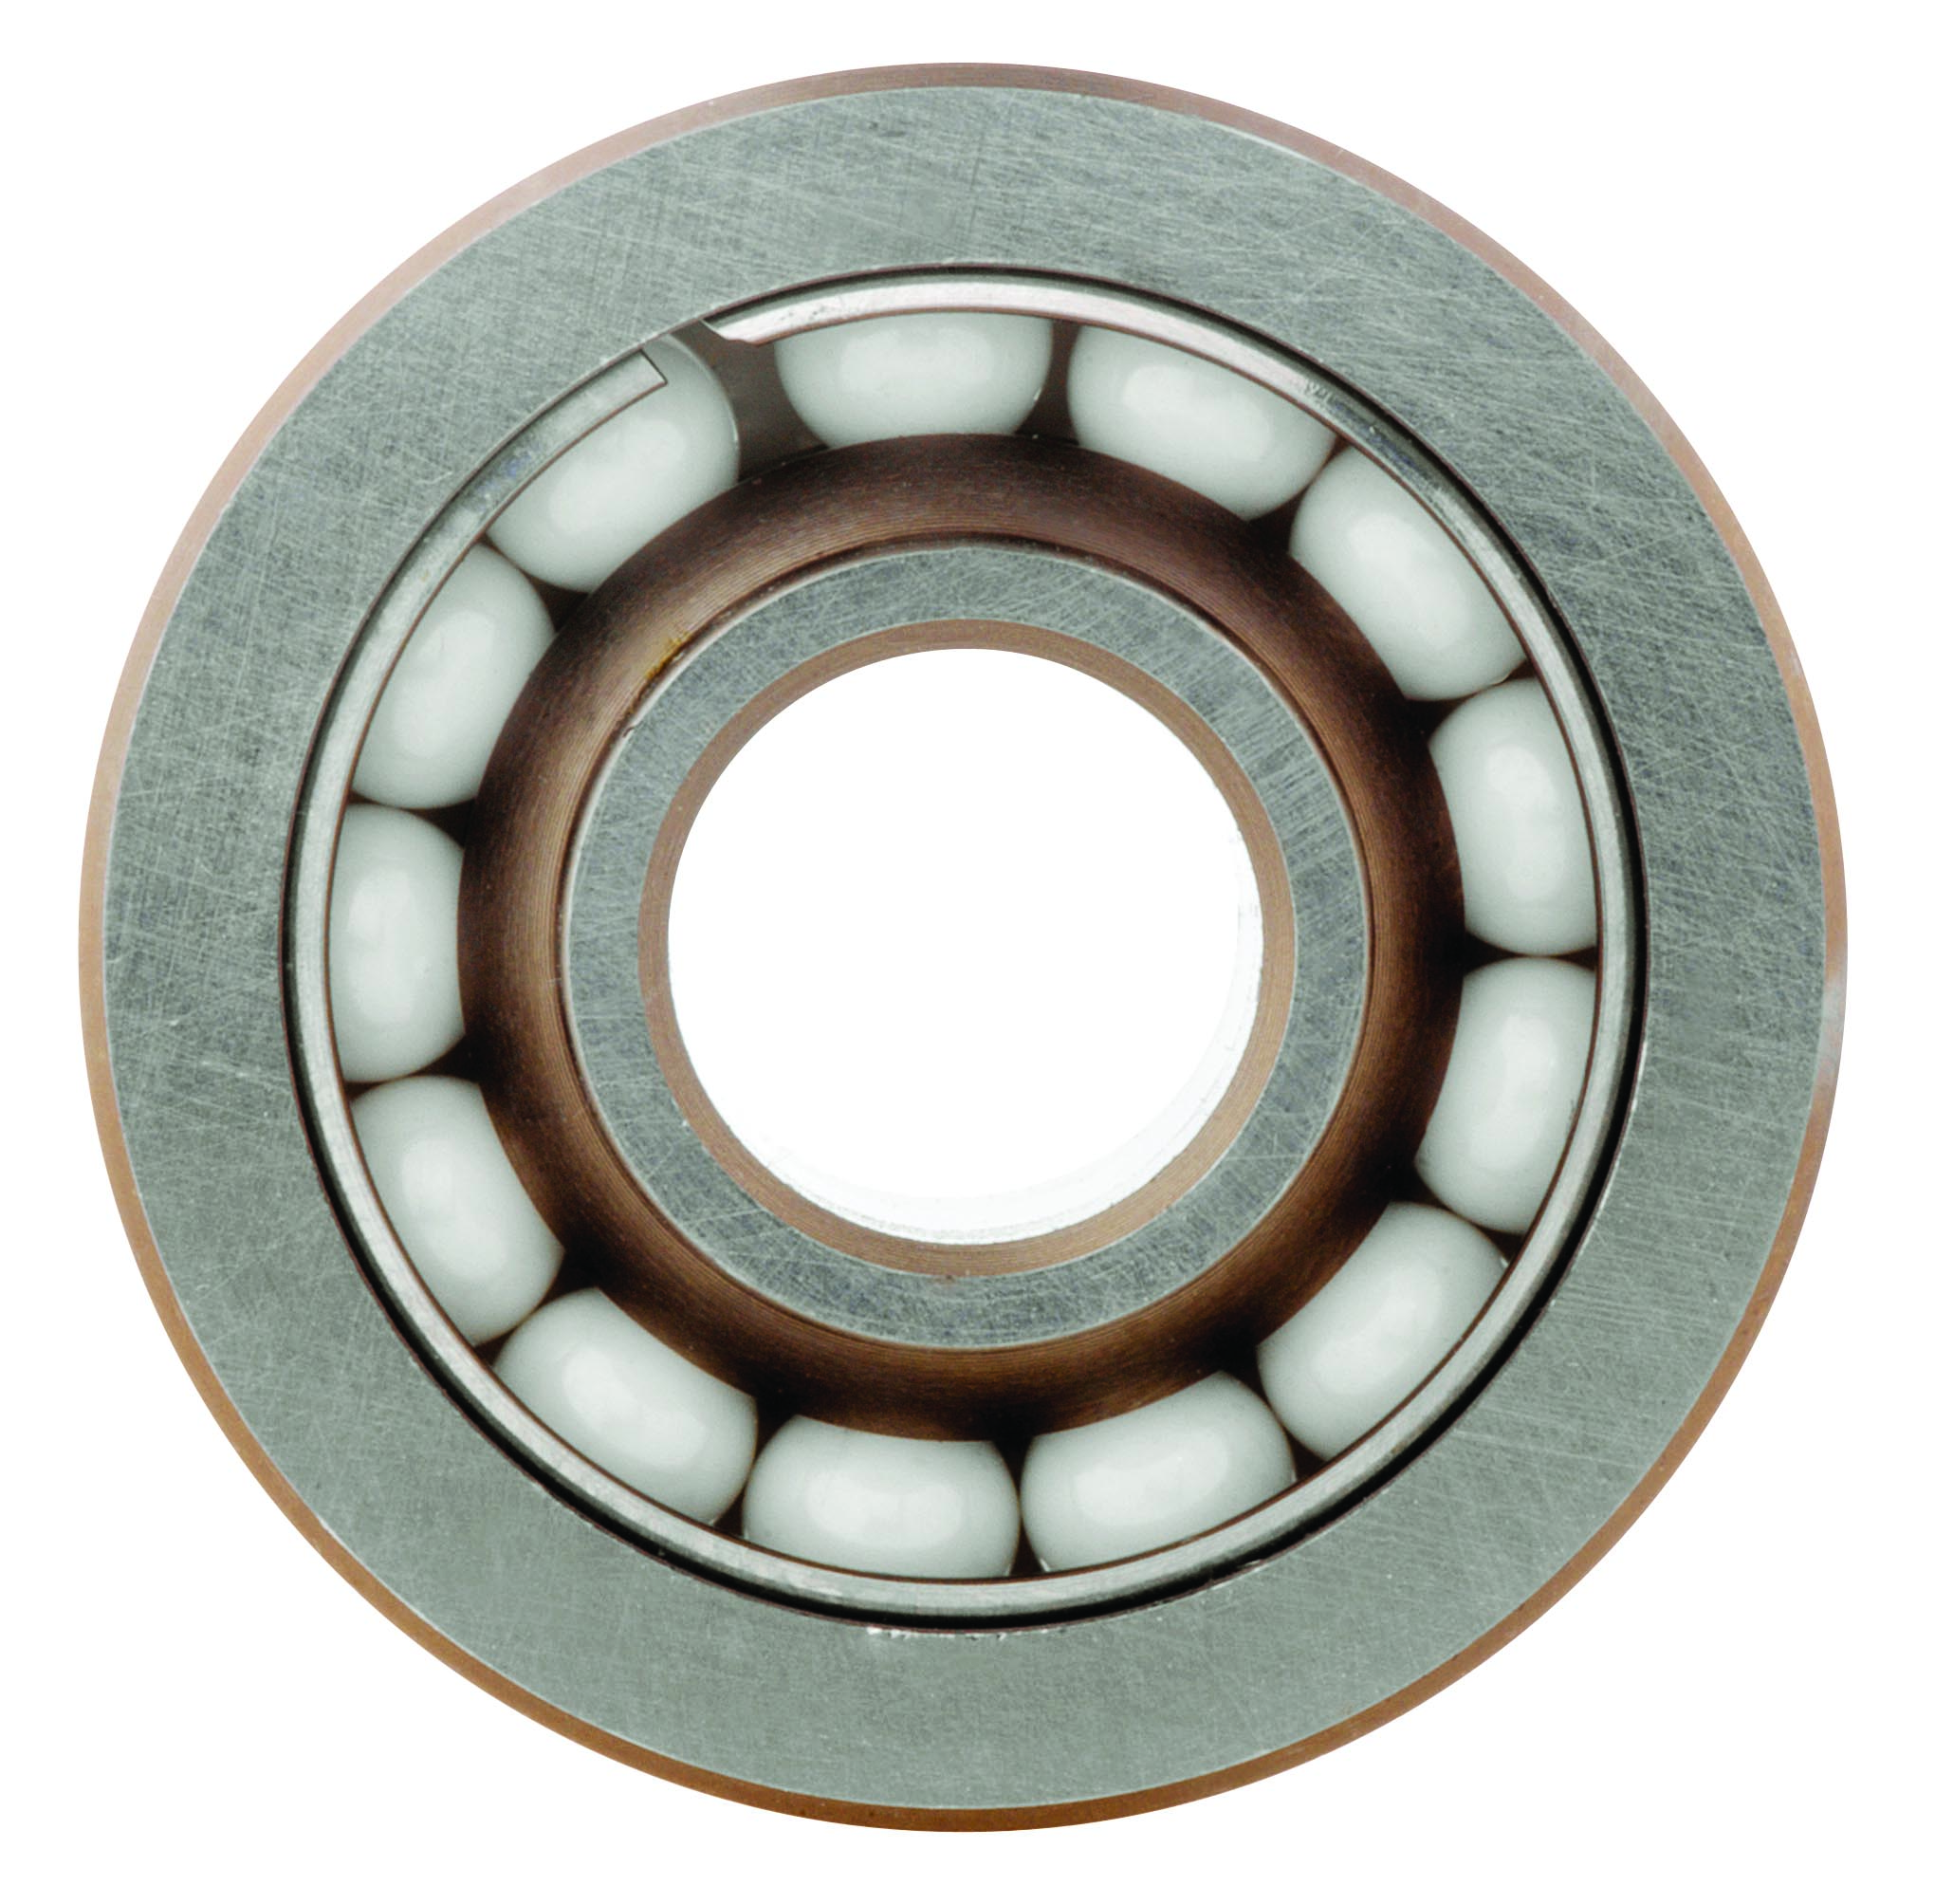 Kaman RWG Rolling Element Bearing